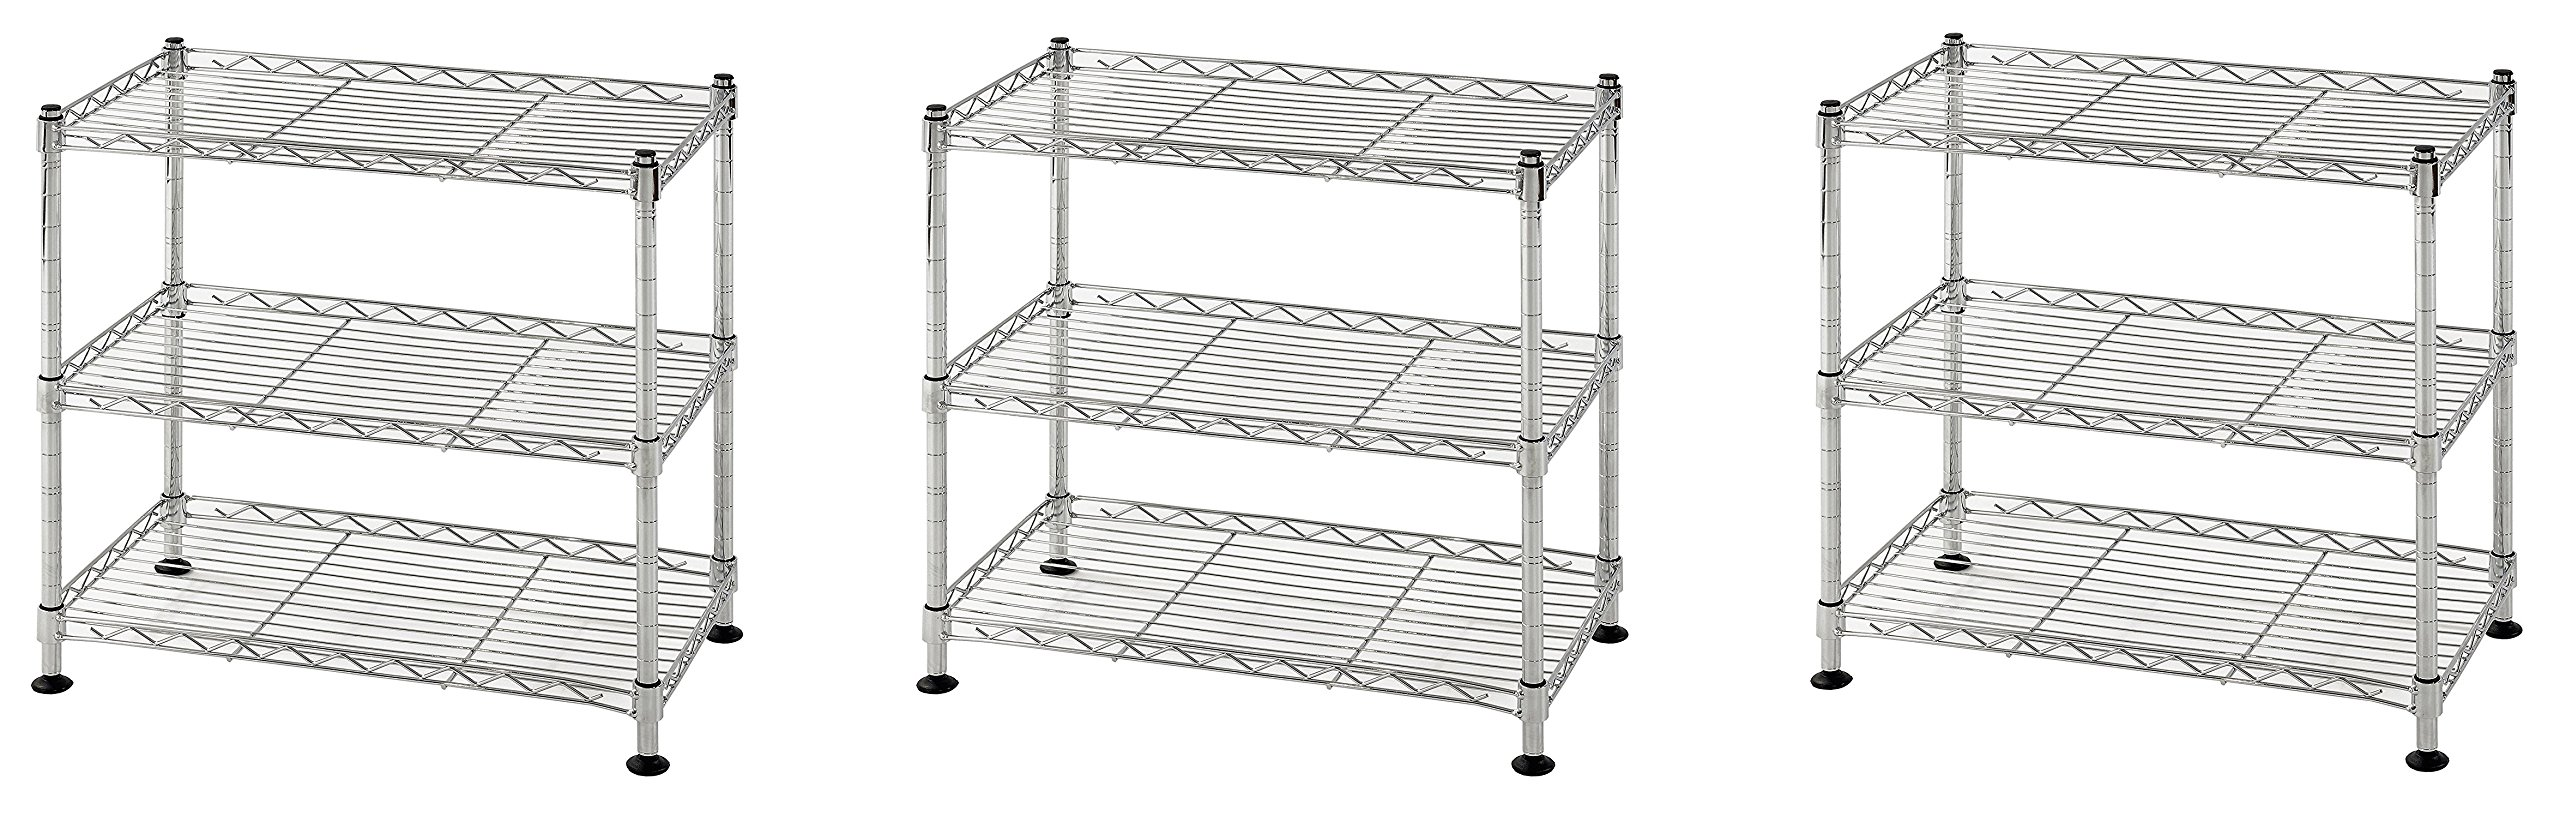 Muscle Rack WS181018-C Steel Adjustable Wire Shelving, 3 Shelves, Chrome, 18'' Height, 18'' width, 264 lb. Load Capacity (3 PACK)